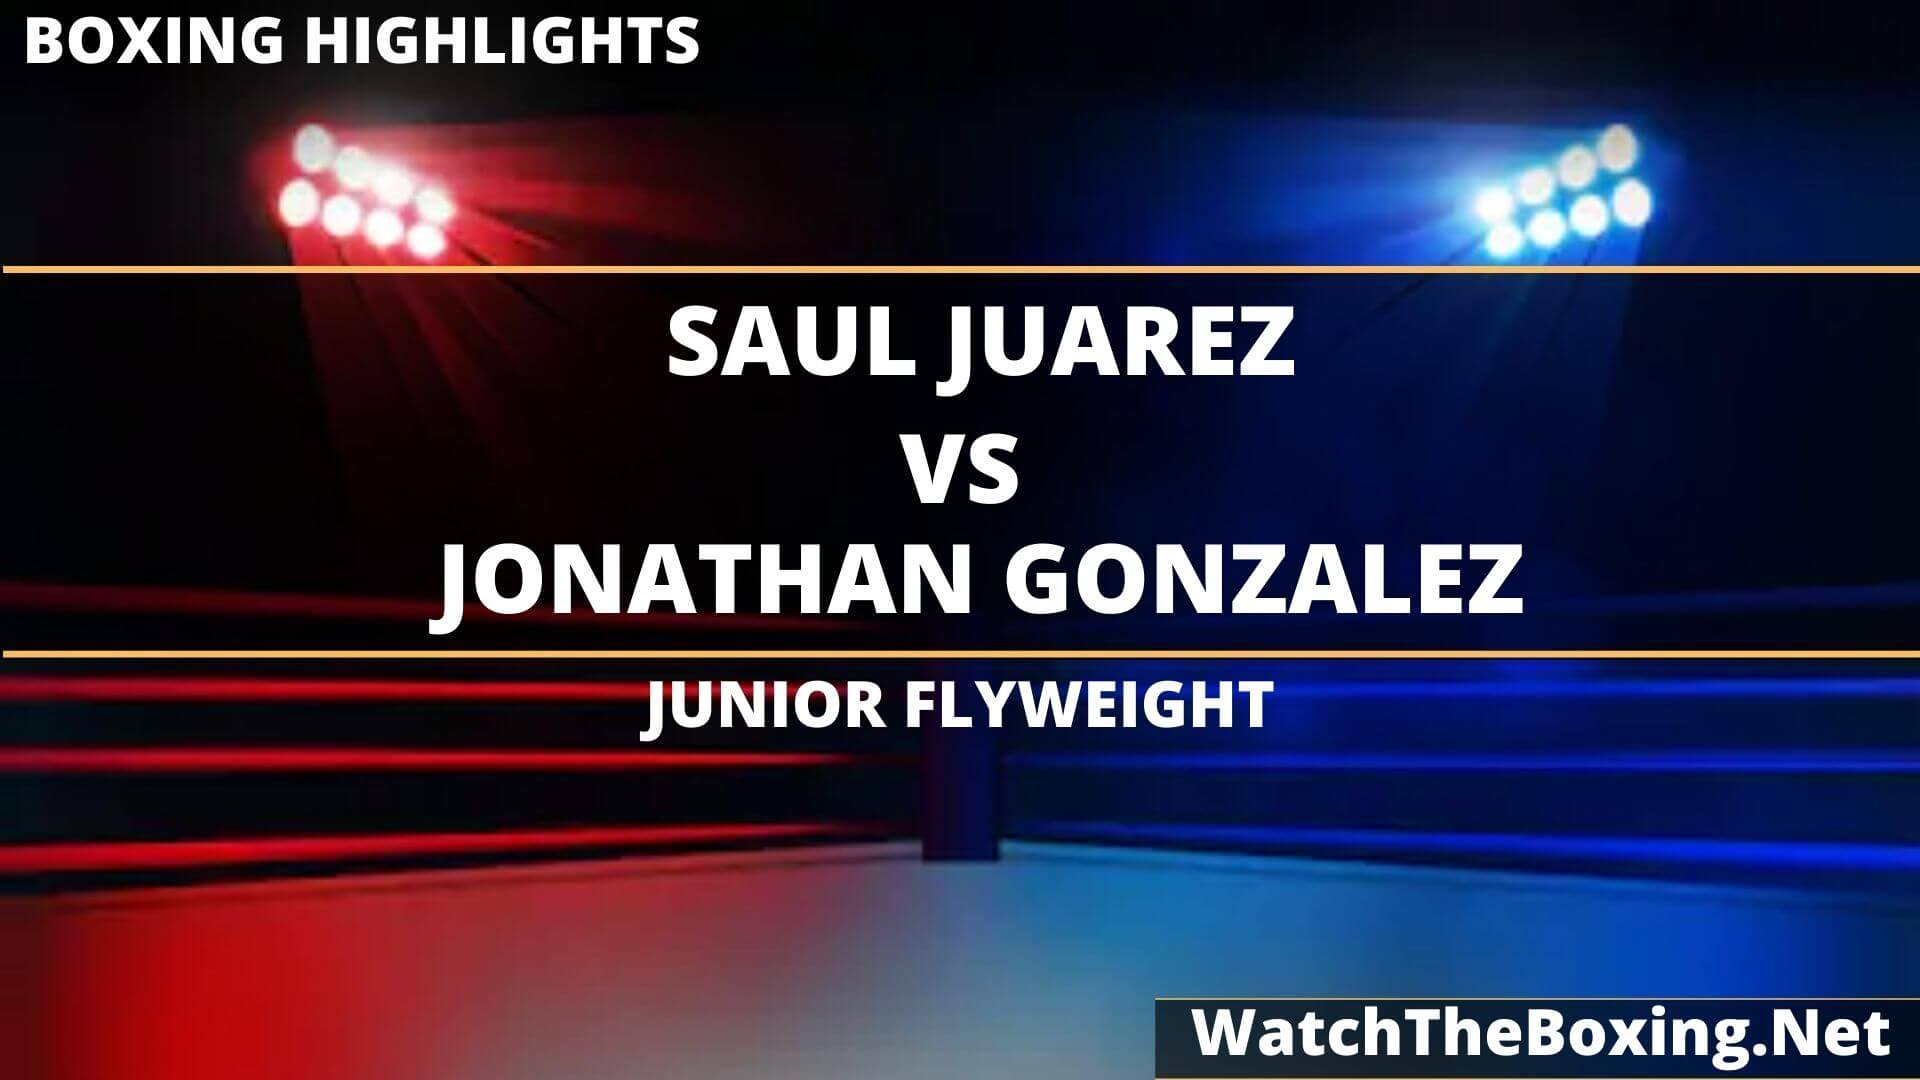 Saul Juarez Vs Jonathan Gonzalez Highlights 2020